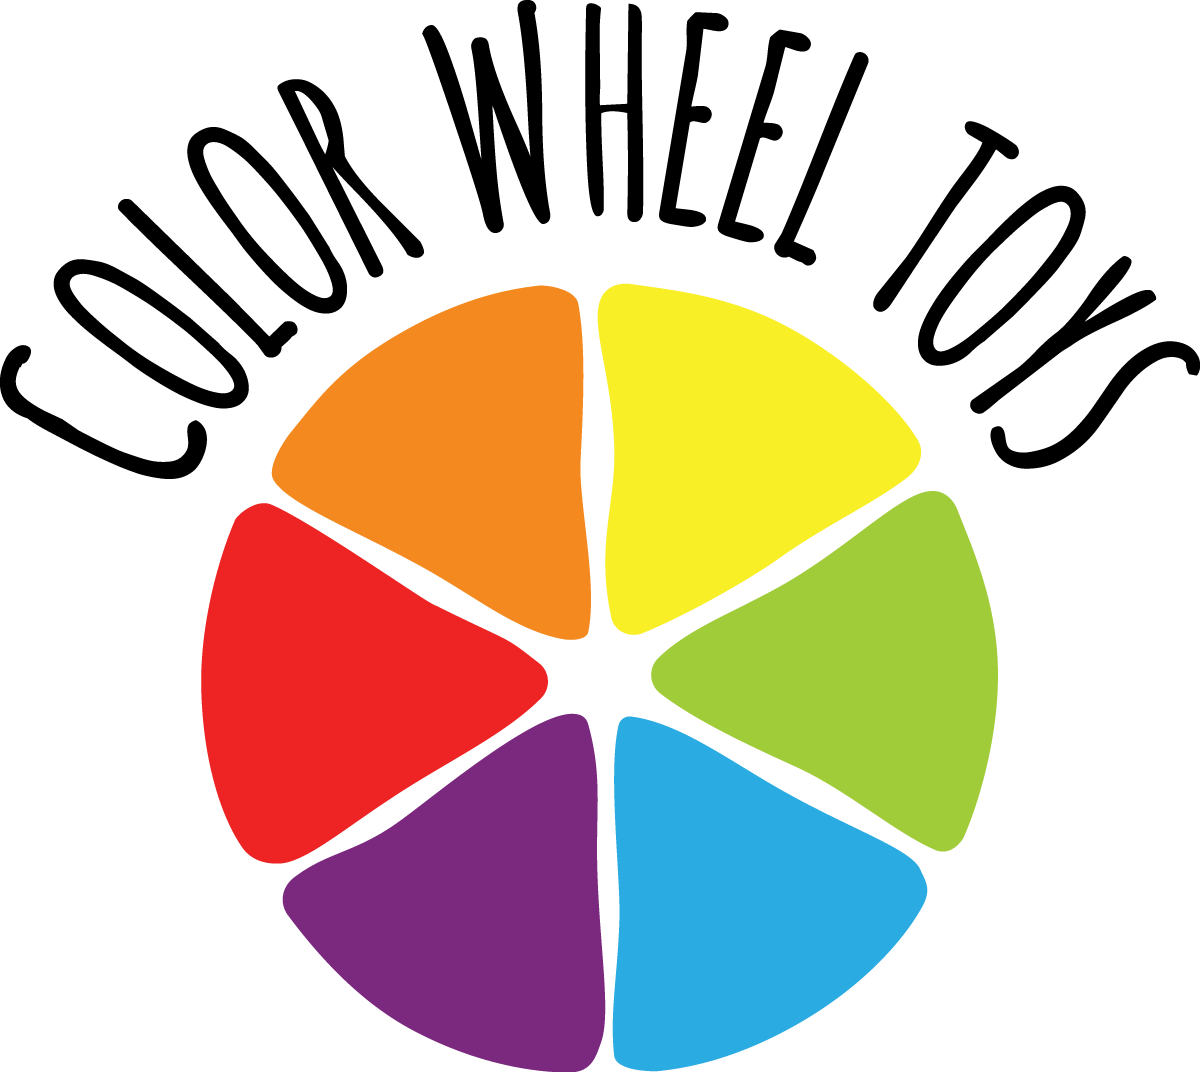 colorwheeltoys-logo-d-color.png